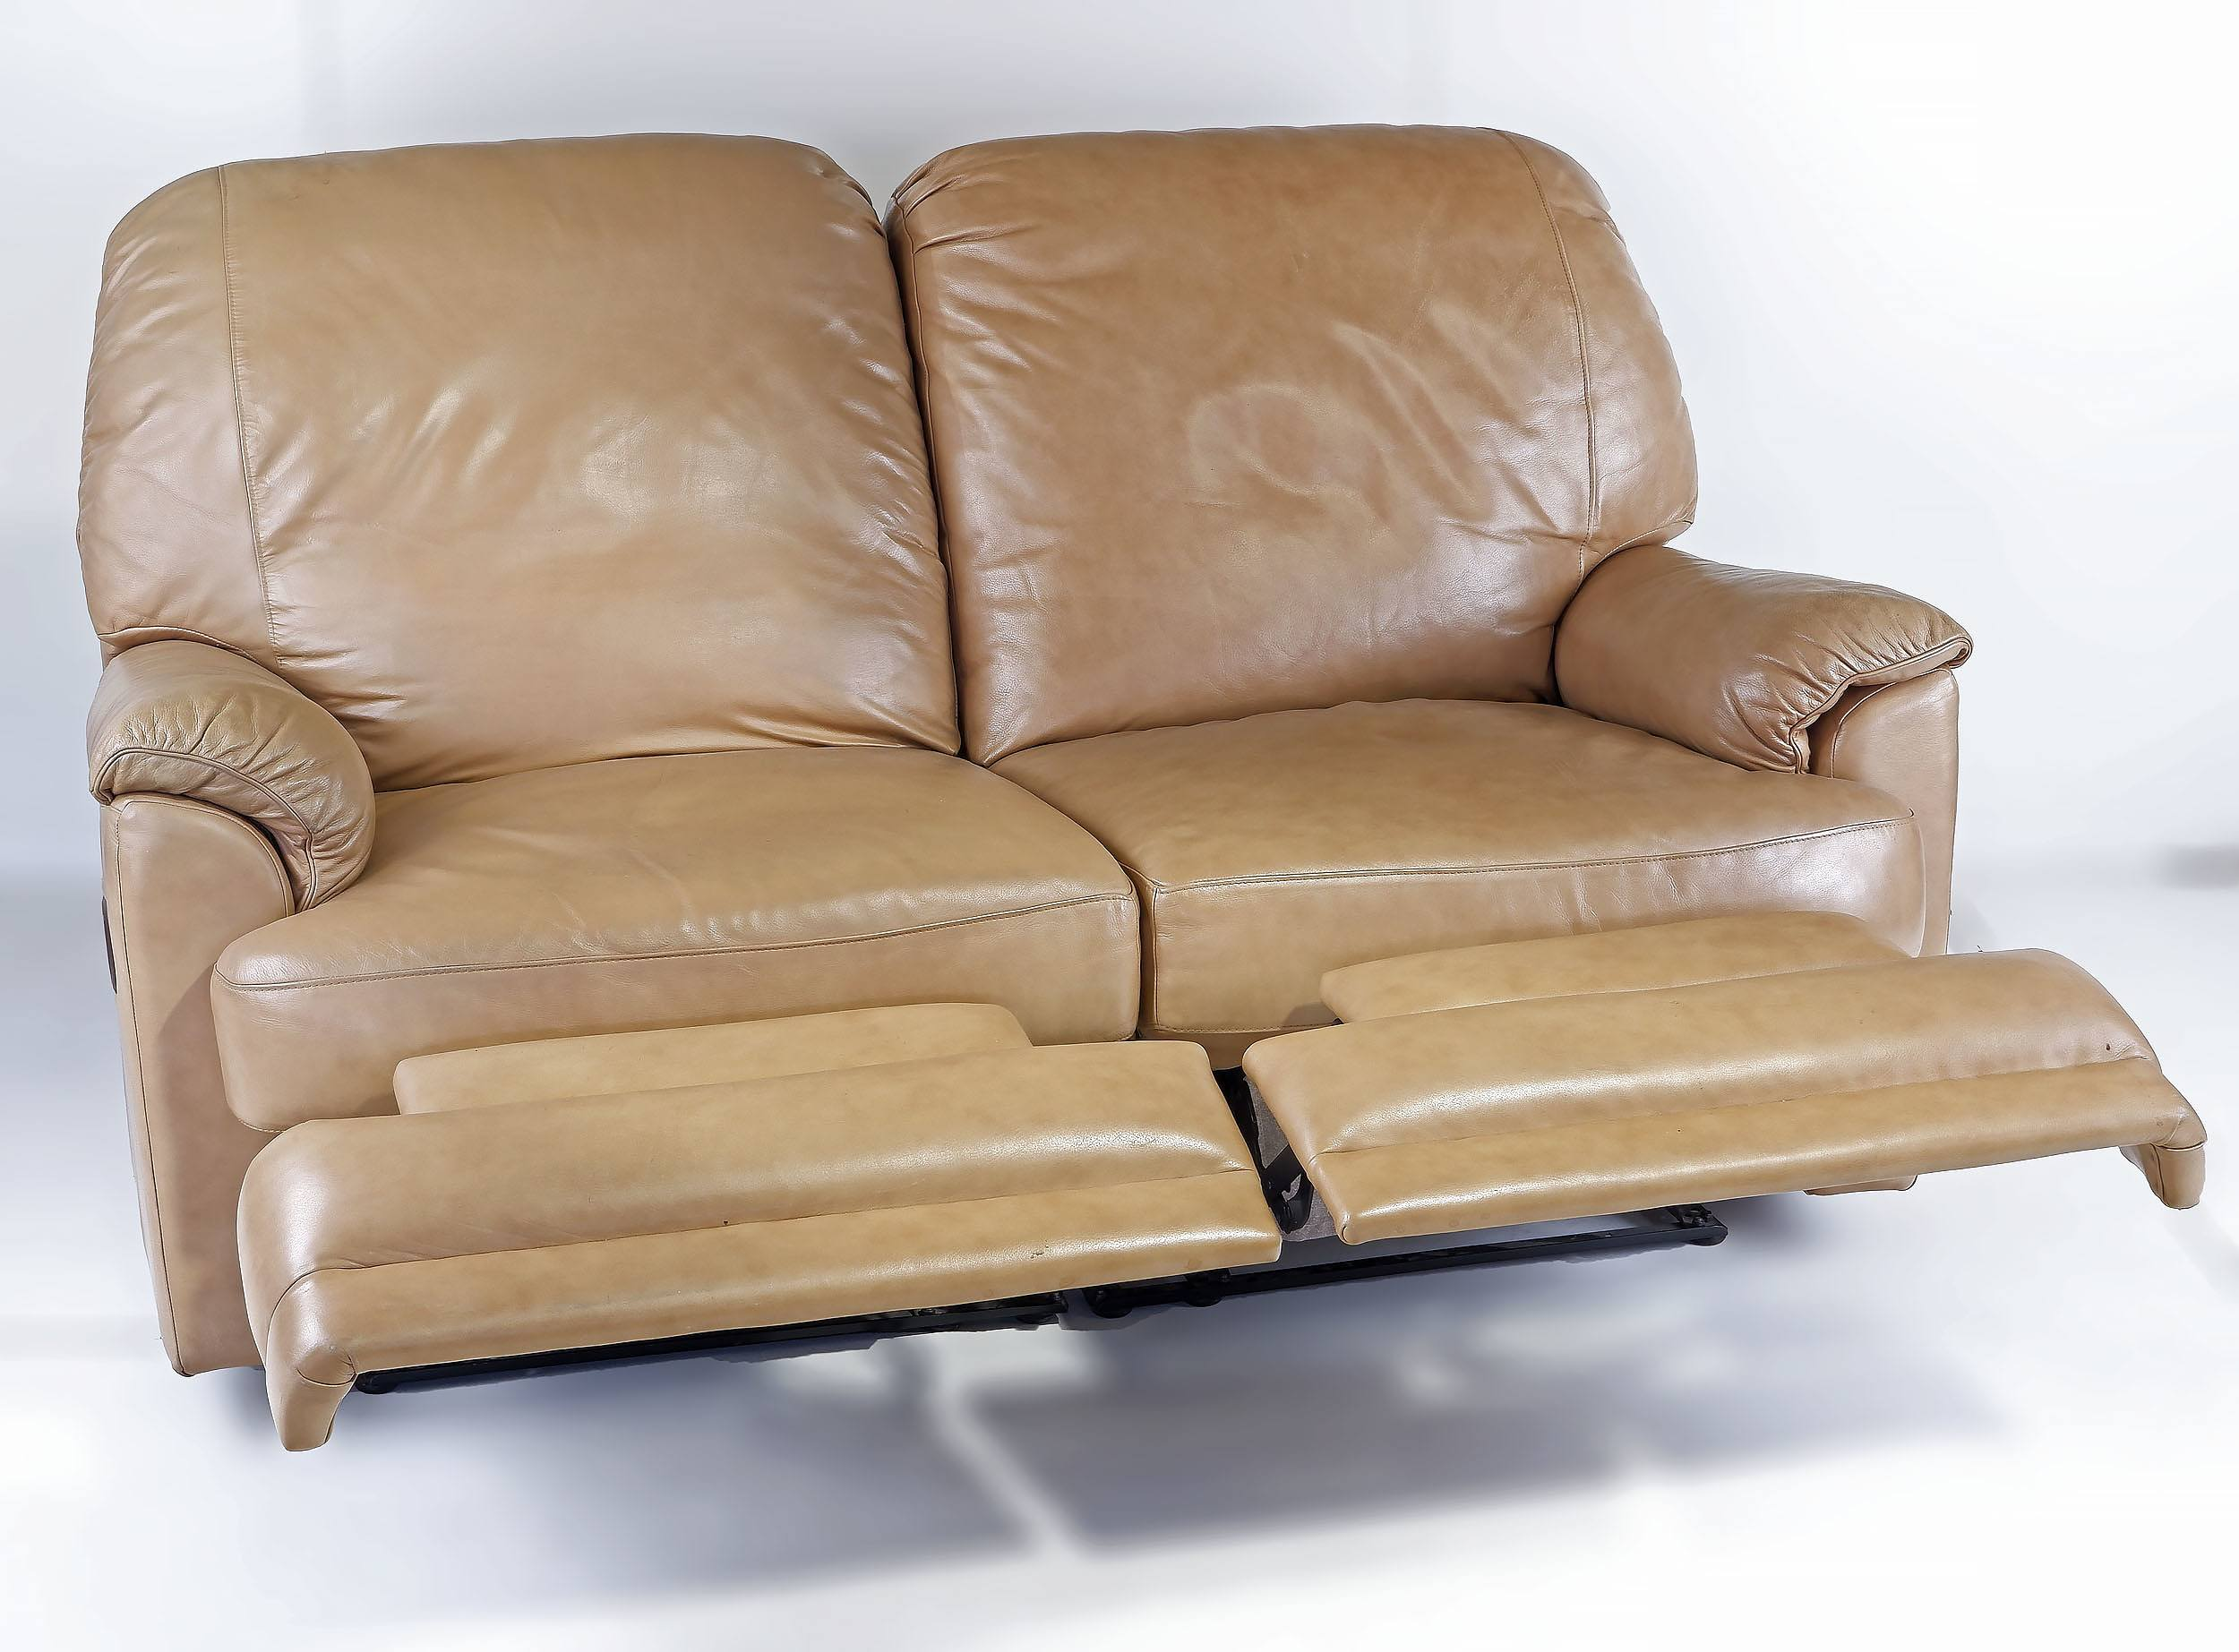 'Moran Leather Two Seater Beige Leather Recliner Lounge'